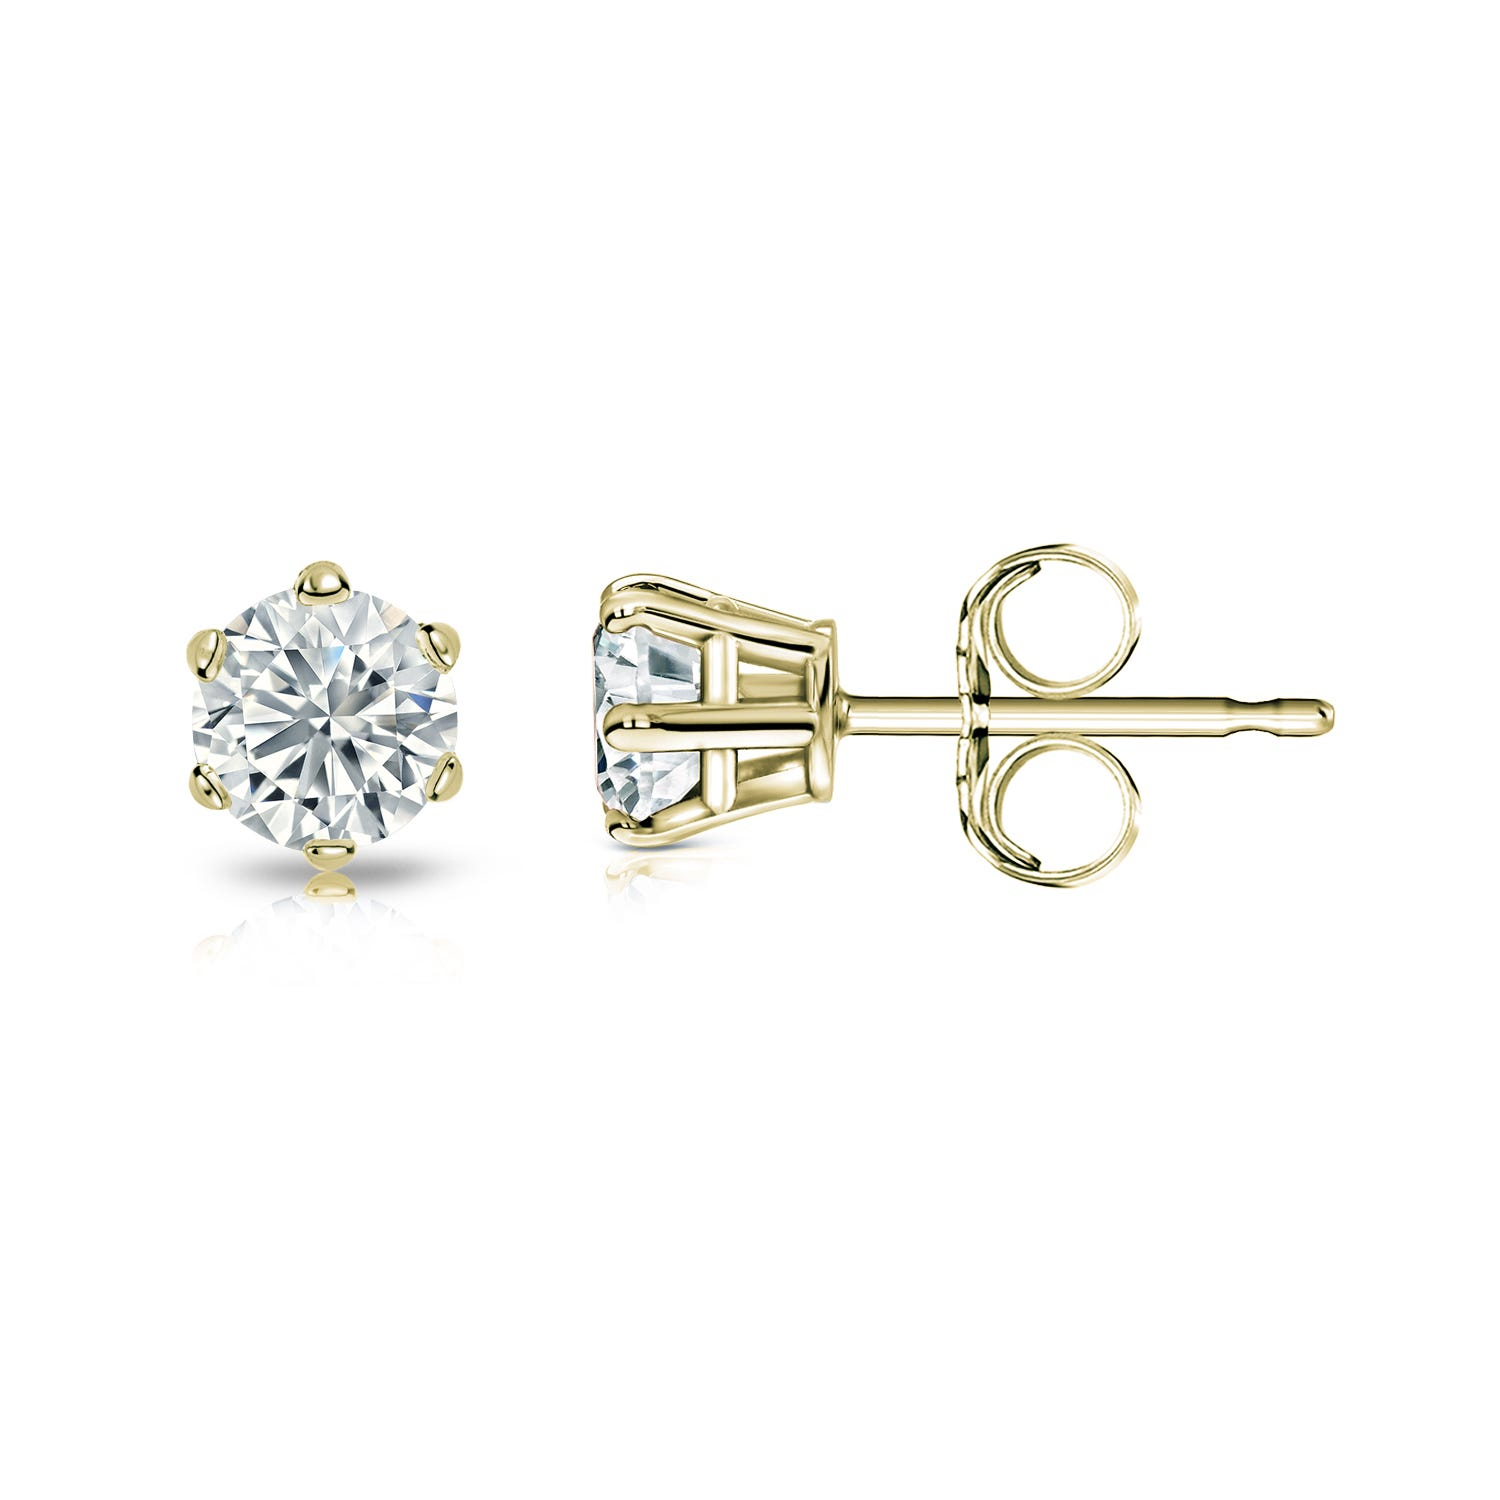 Round Diamond 1/10ctw. (IJ-I2) Solitaire Stud 6-Prong Earrings in 10K Yellow Gold